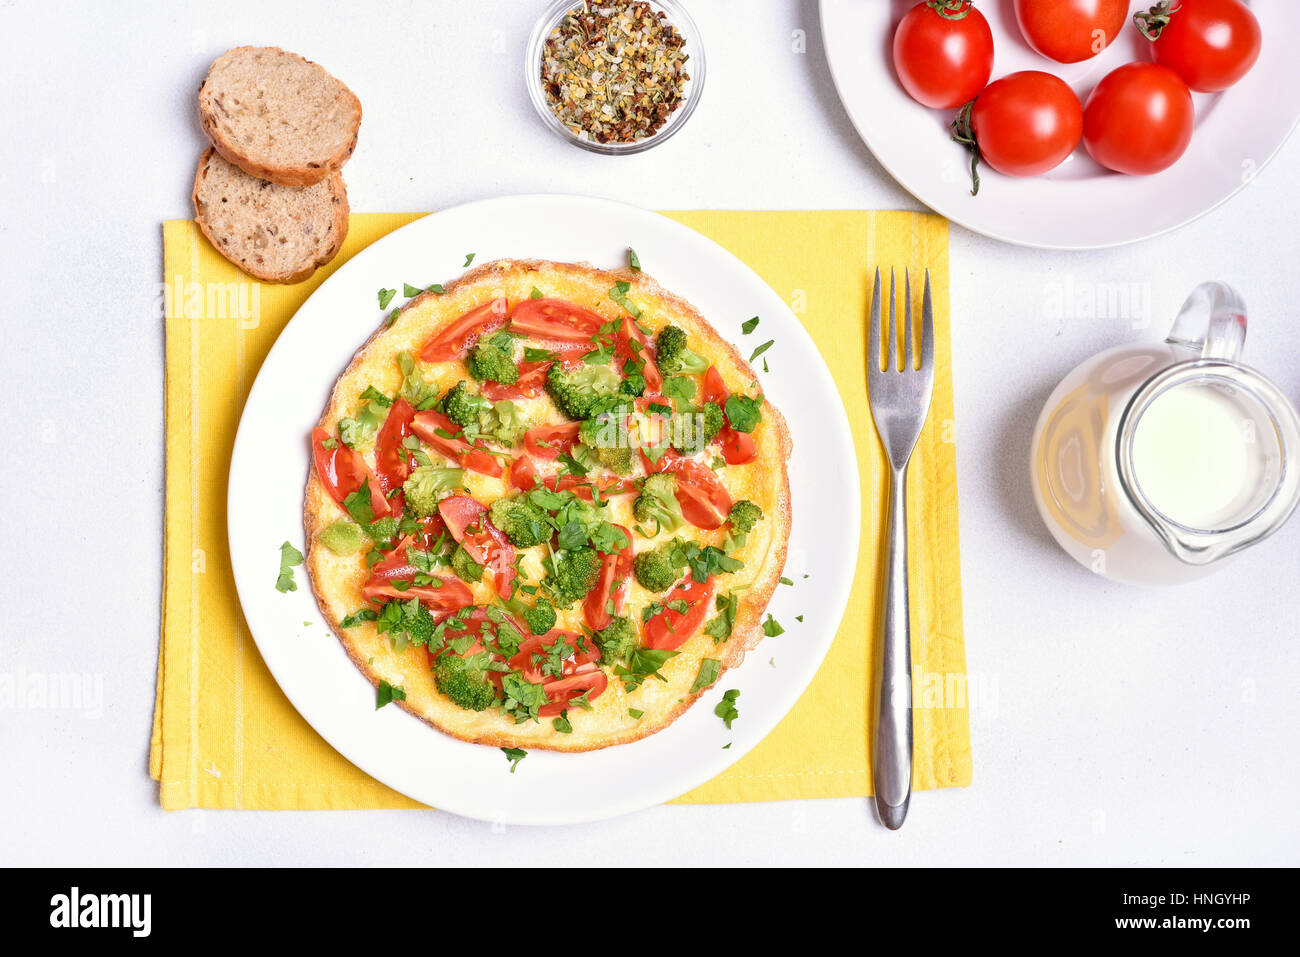 Omelet with vegetables on plate, top view. - Stock Image